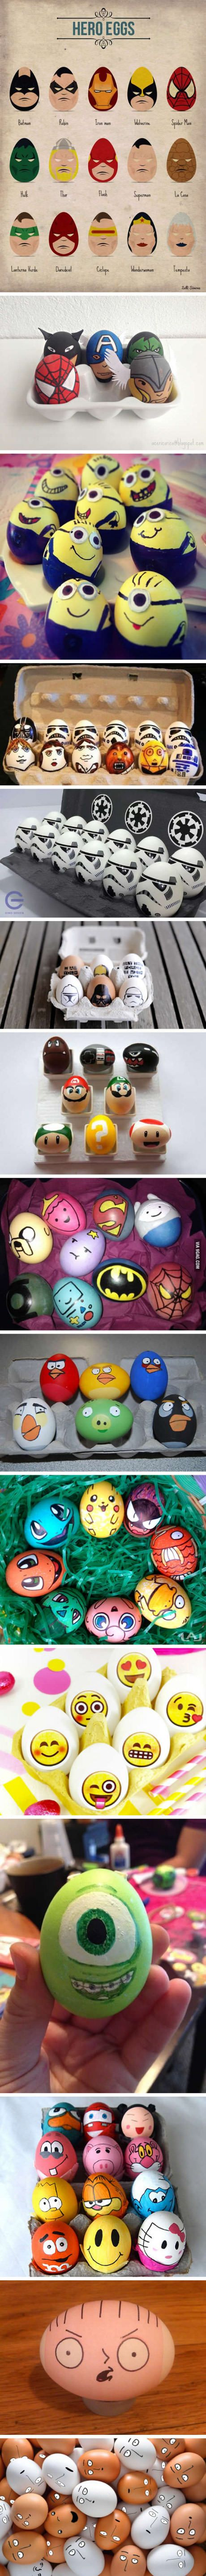 Easter ideas part 3 of 3 real deep stuff - Awesome Easter Ideas